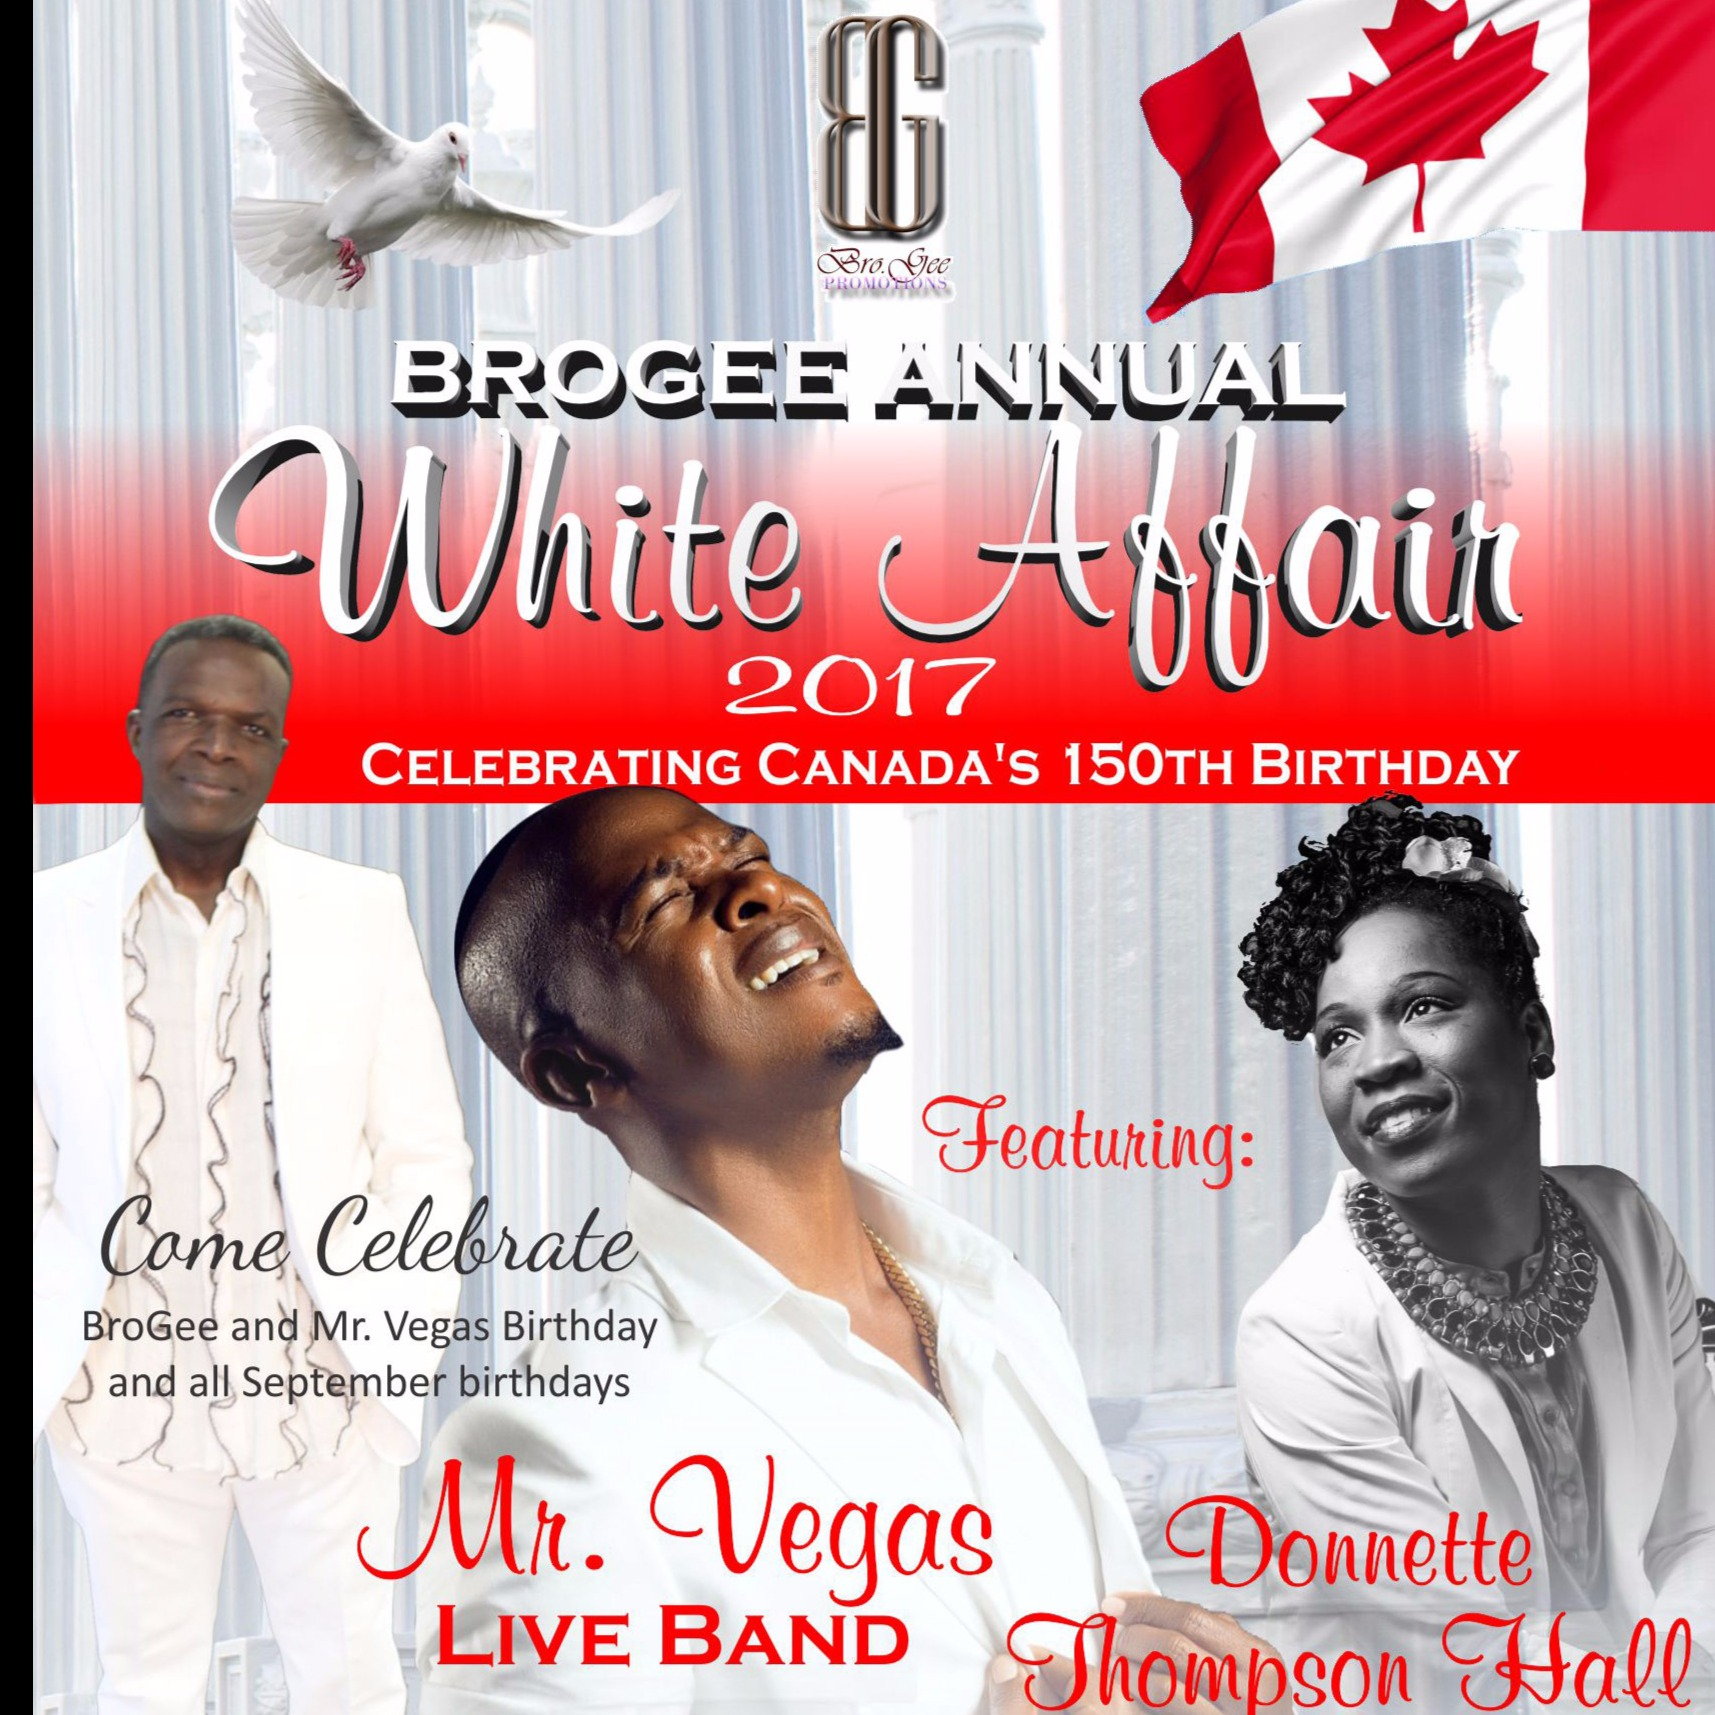 BROGEE ANNUAL WHITE AFFAIR 2017